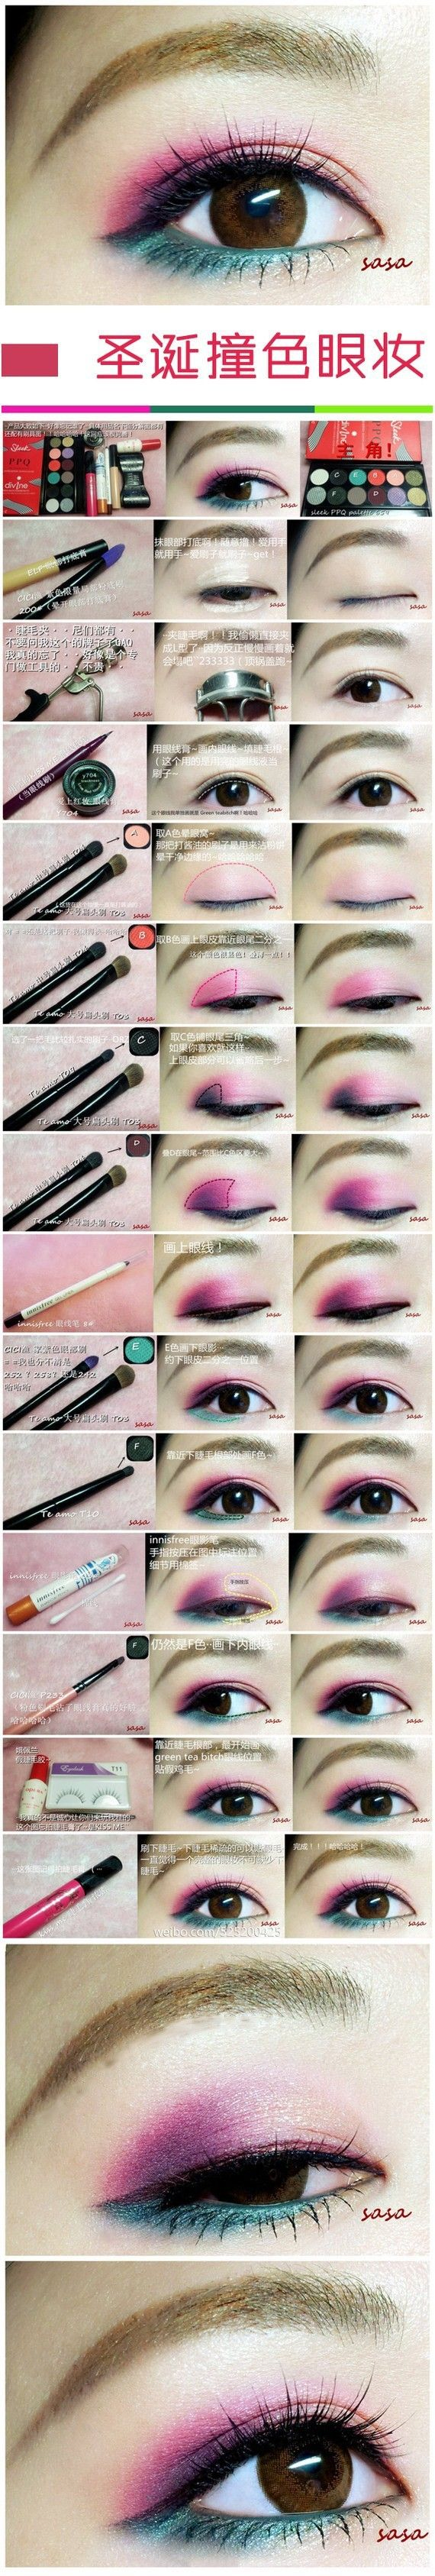 Chinese makeup tutorial using bright Sleek palettes